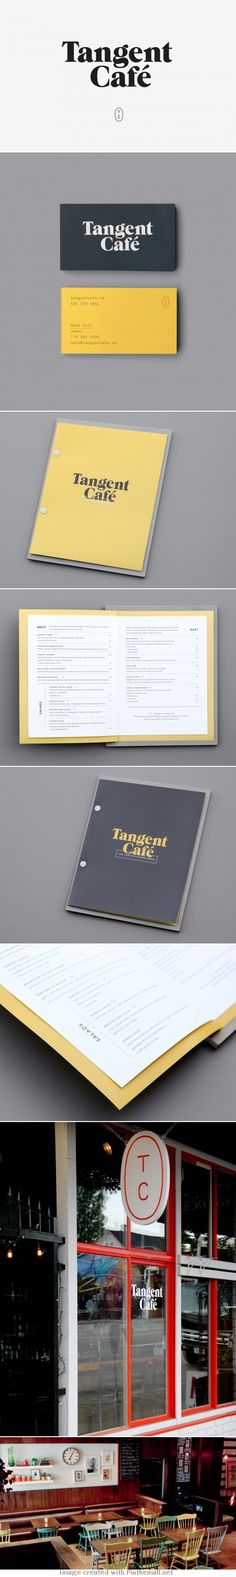 Tangent Cafe / by Fivethousand Fingers